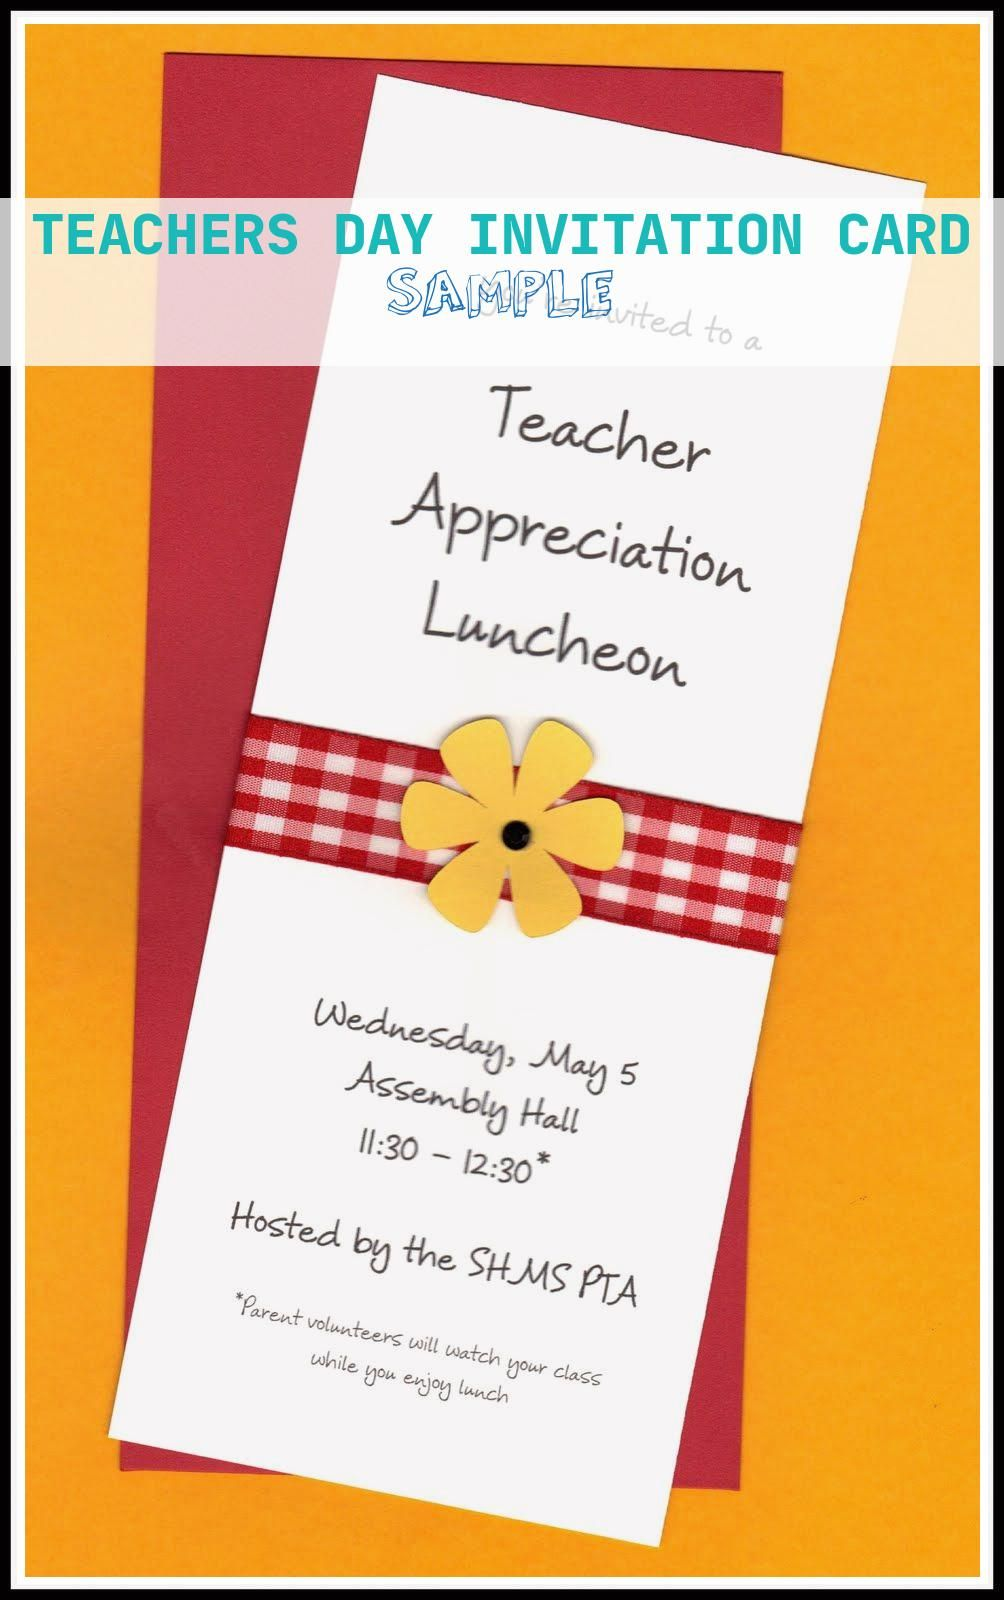 14 Top Teachers Day Invitation Card Sample In 2020 Teacher Appreciation Lunch Teacher Appreciation Luncheon Teacher Appreciation Breakfast